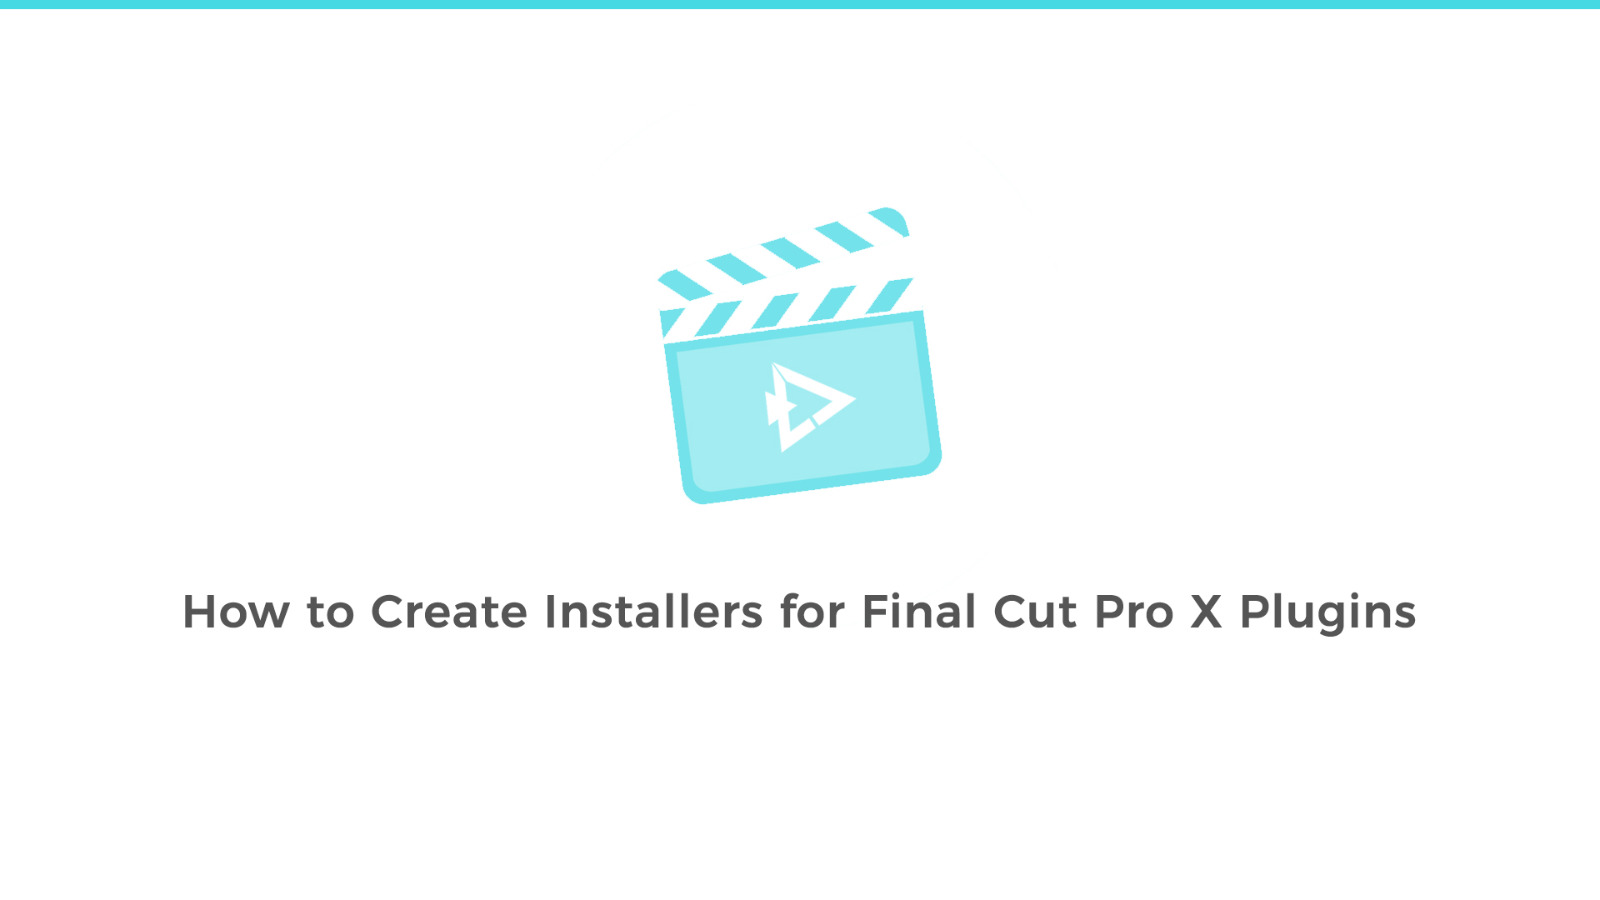 How to Create Installers for FCPX Plugins